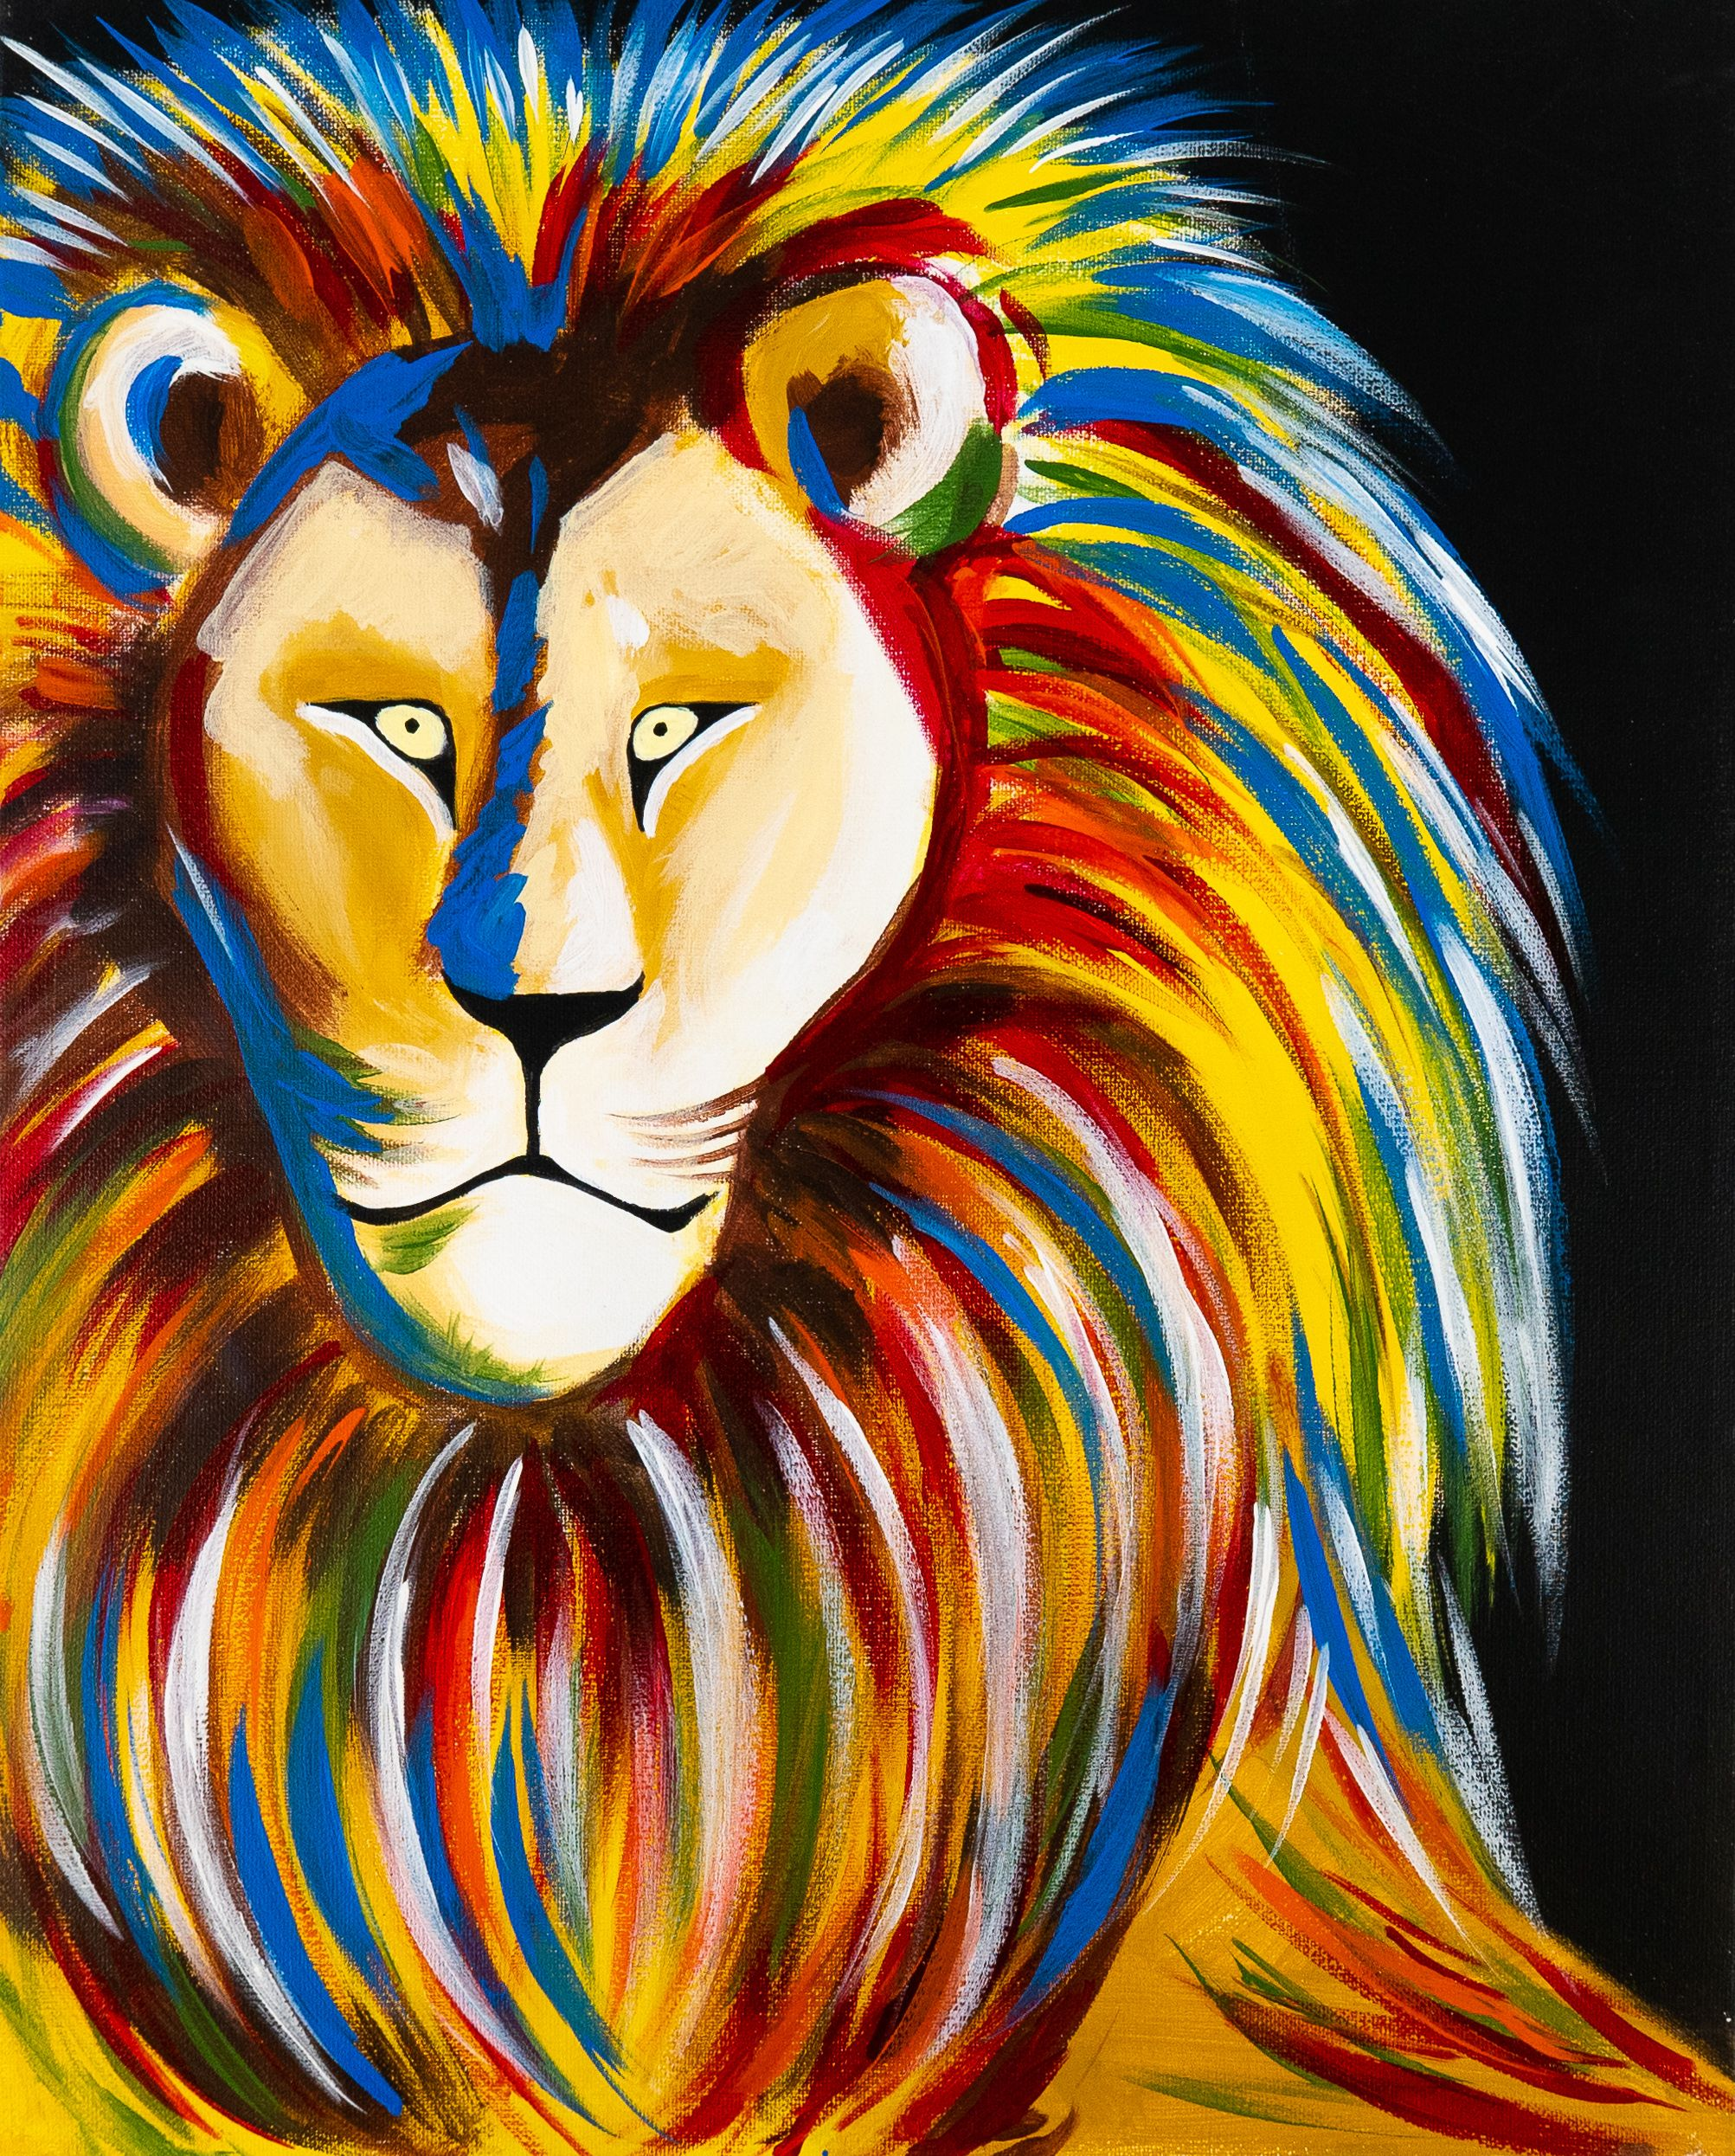 Paint roar with friends and family at your local studio